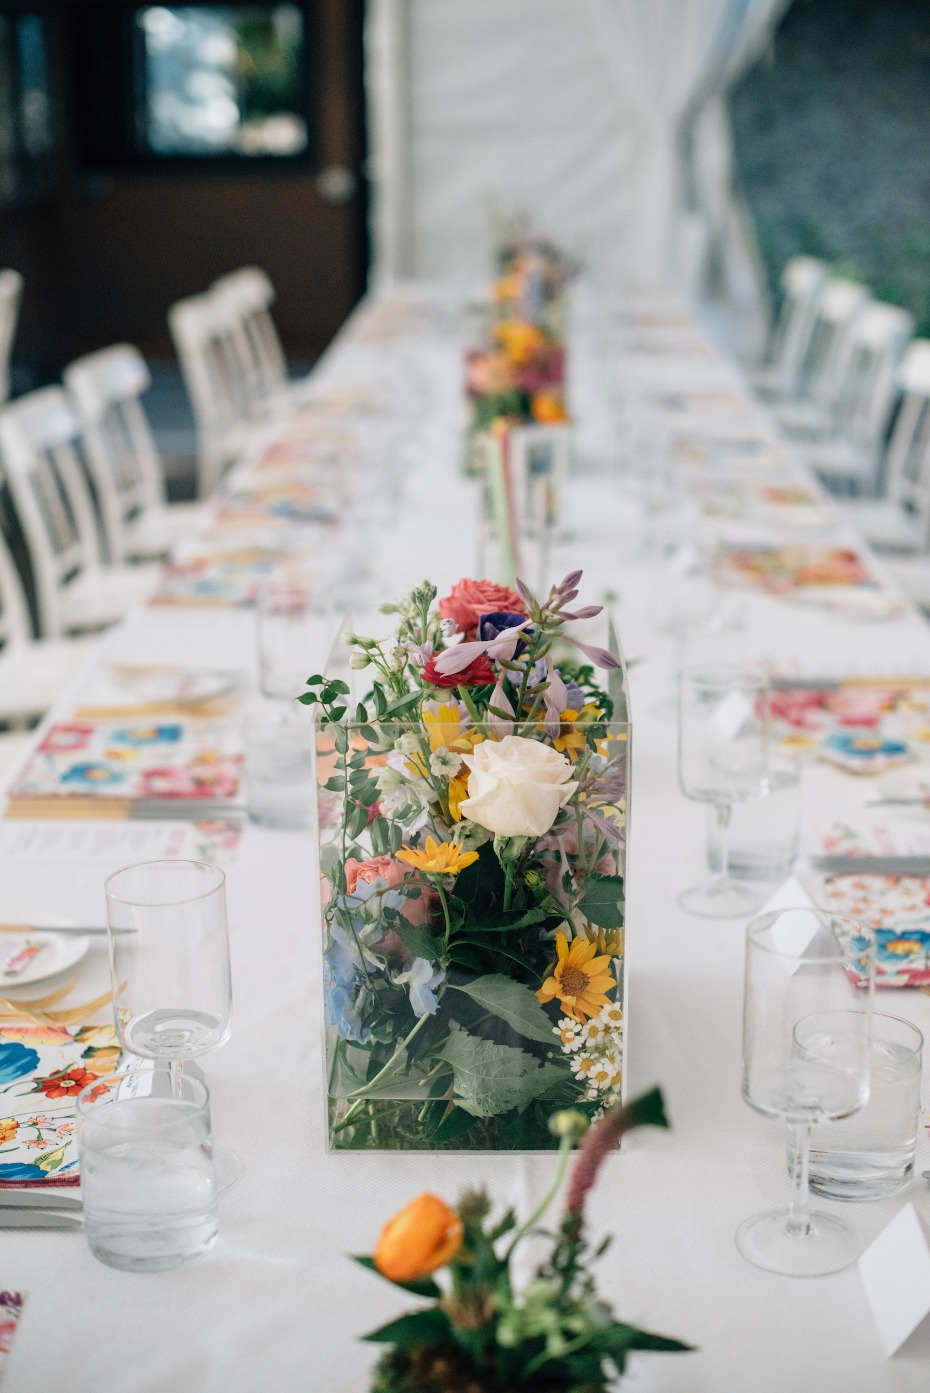 If You Love Flowers this Modern Secret Garden Wedding is for You